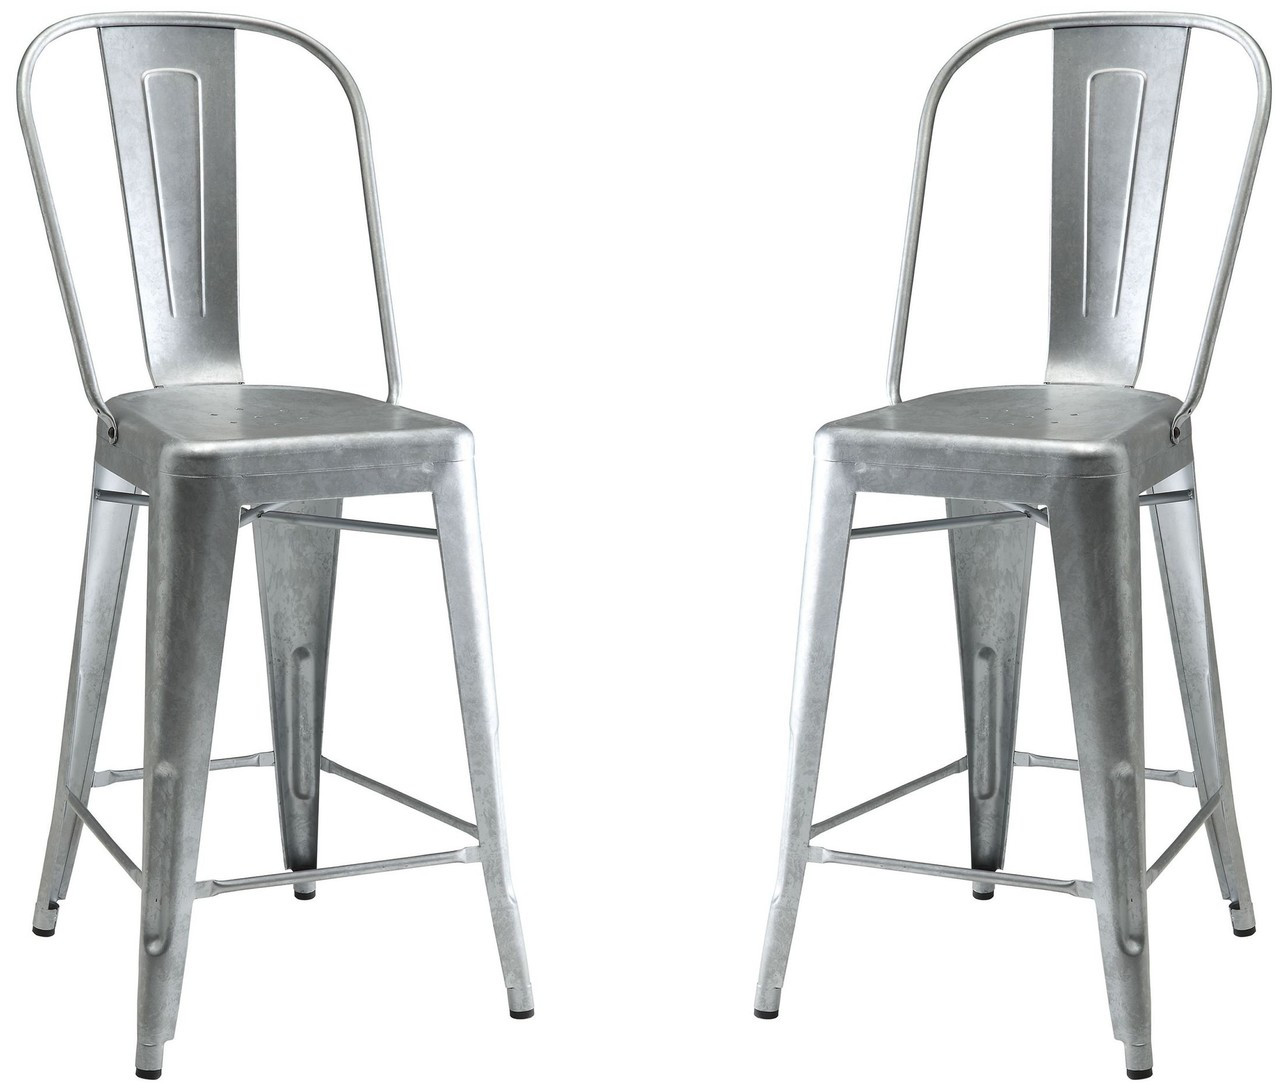 Metal Stools Lahner Bistro Style Metal Counter Stools Set Of 2